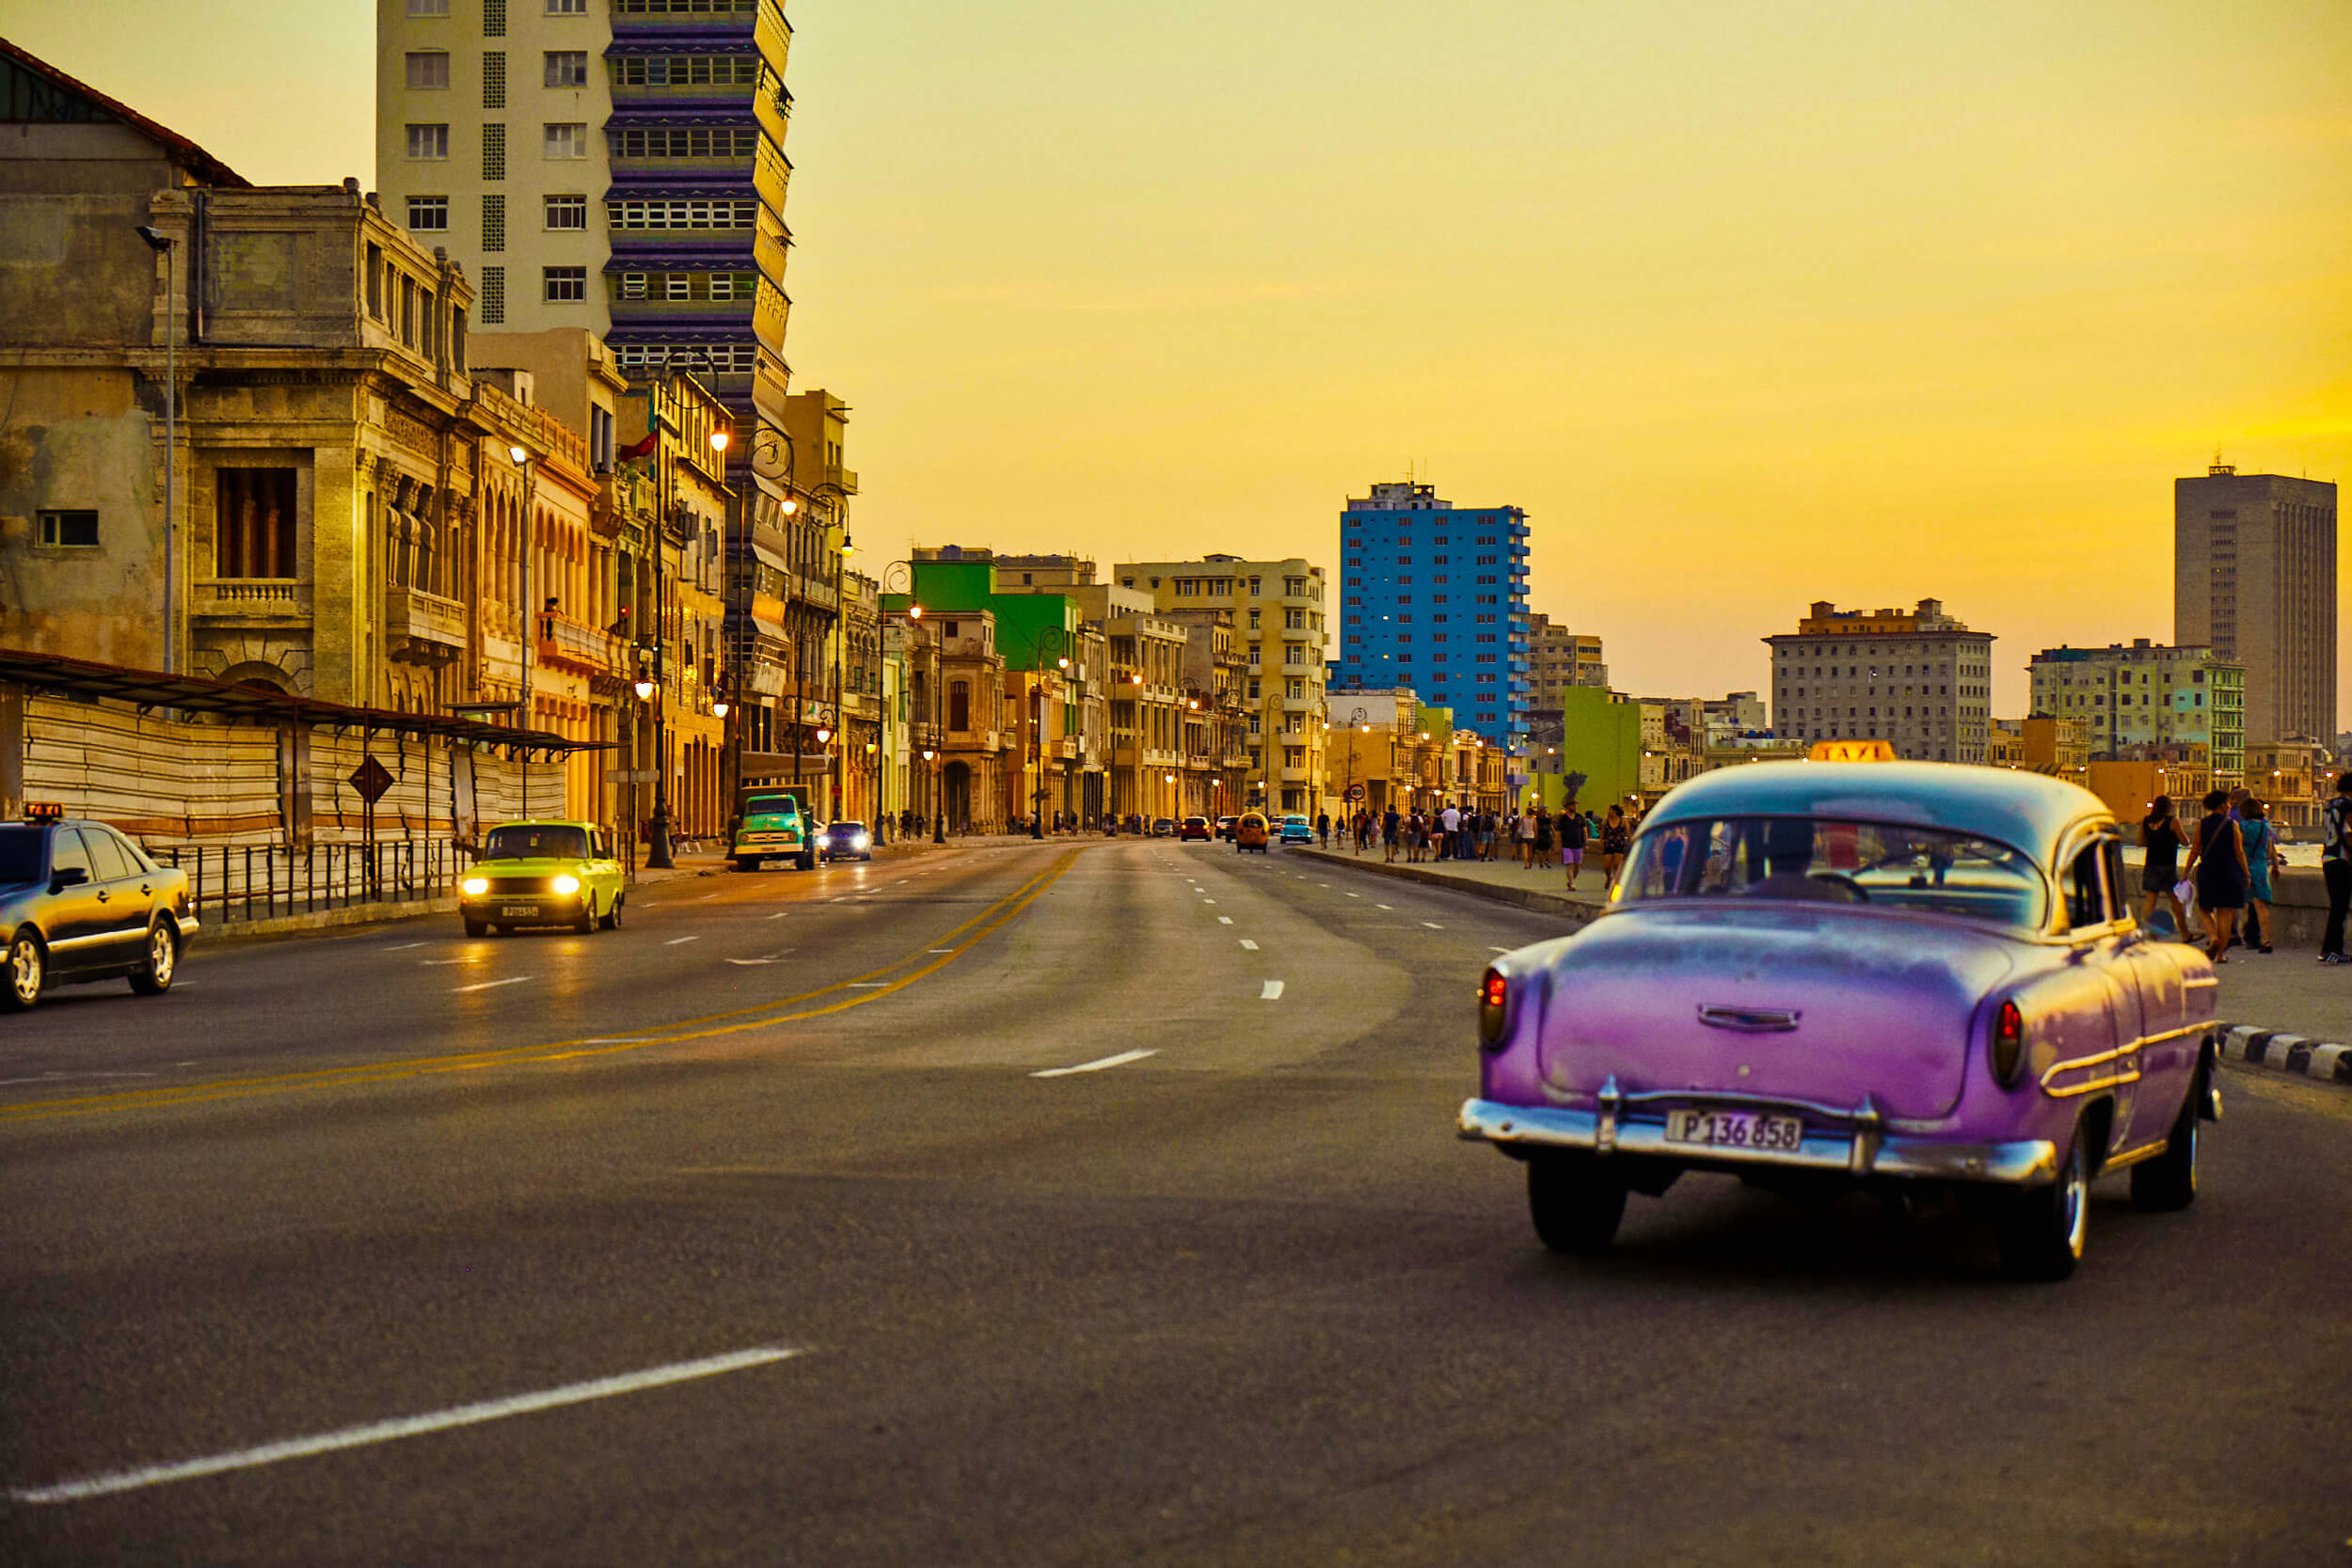 classic-car-ride-Malecon-cuba-travel.jpg